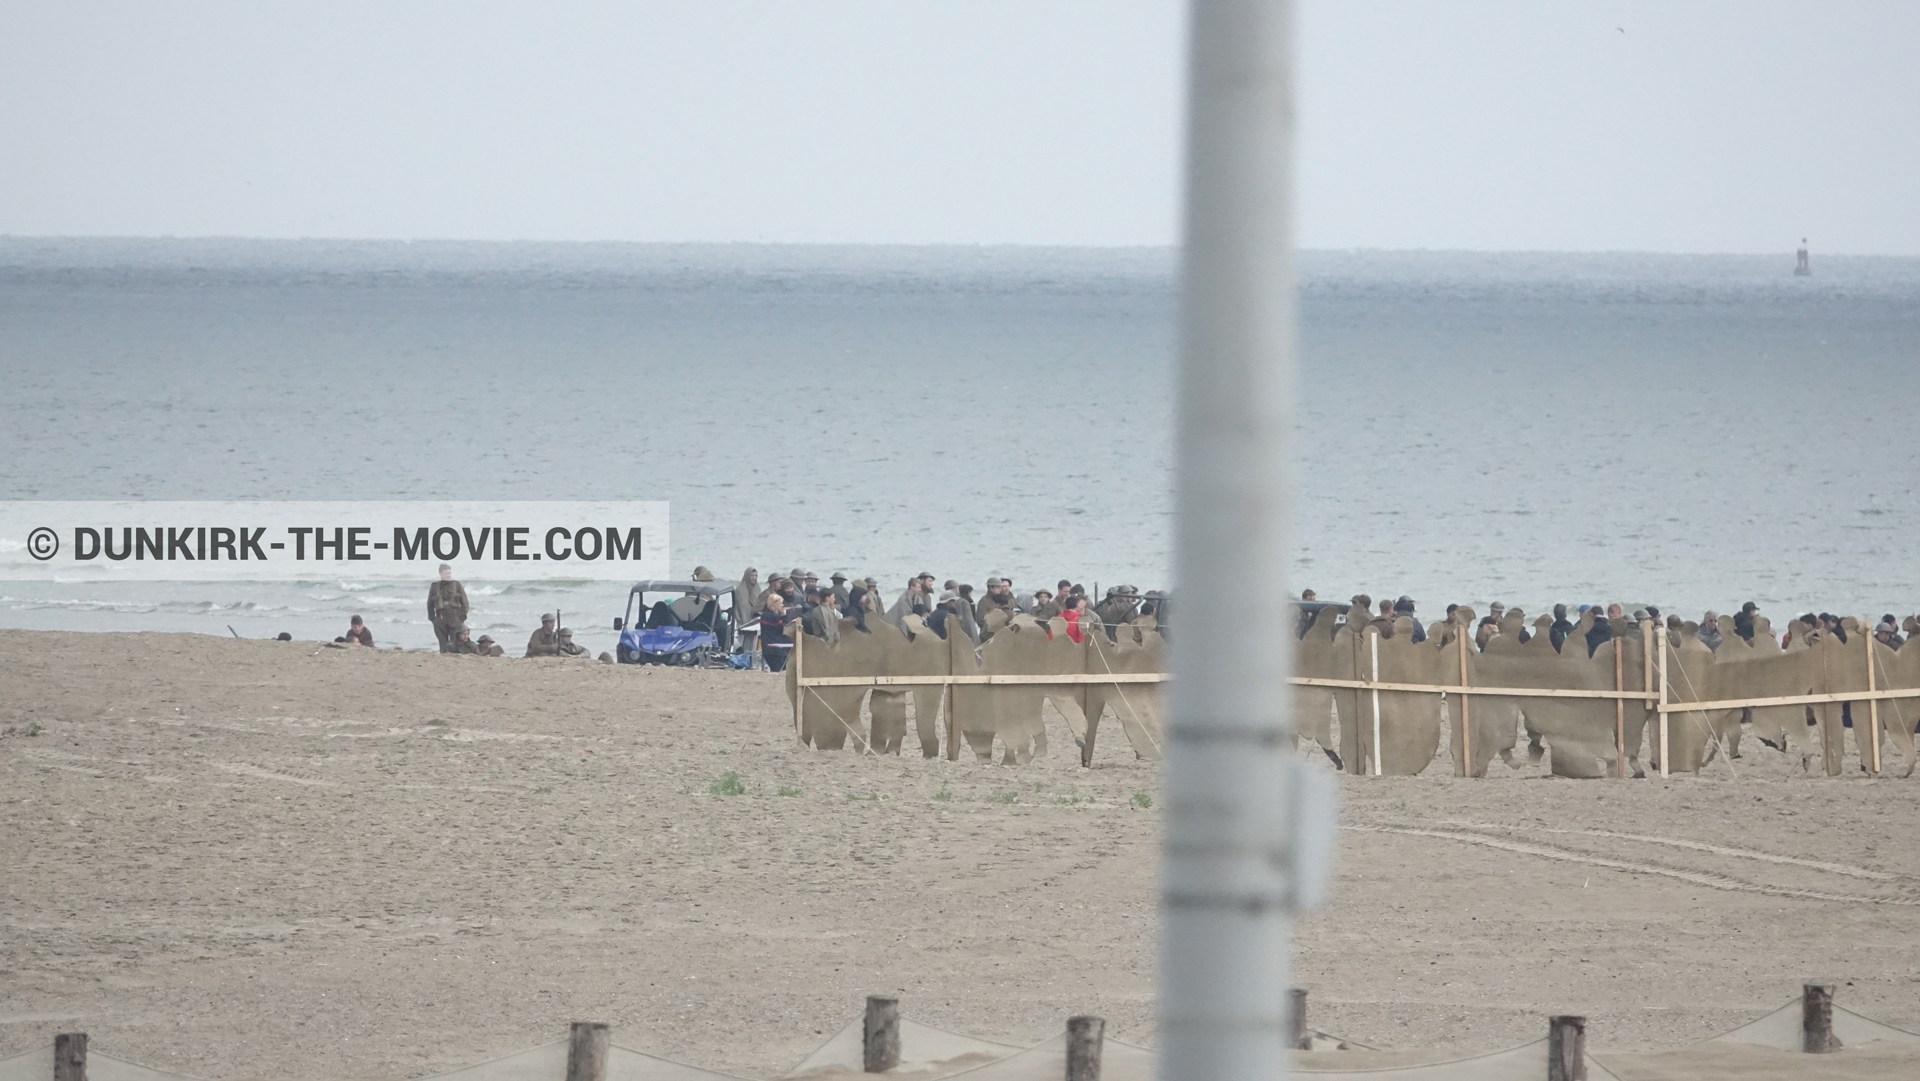 Picture with decor, beach,  from behind the scene of the Dunkirk movie by Nolan